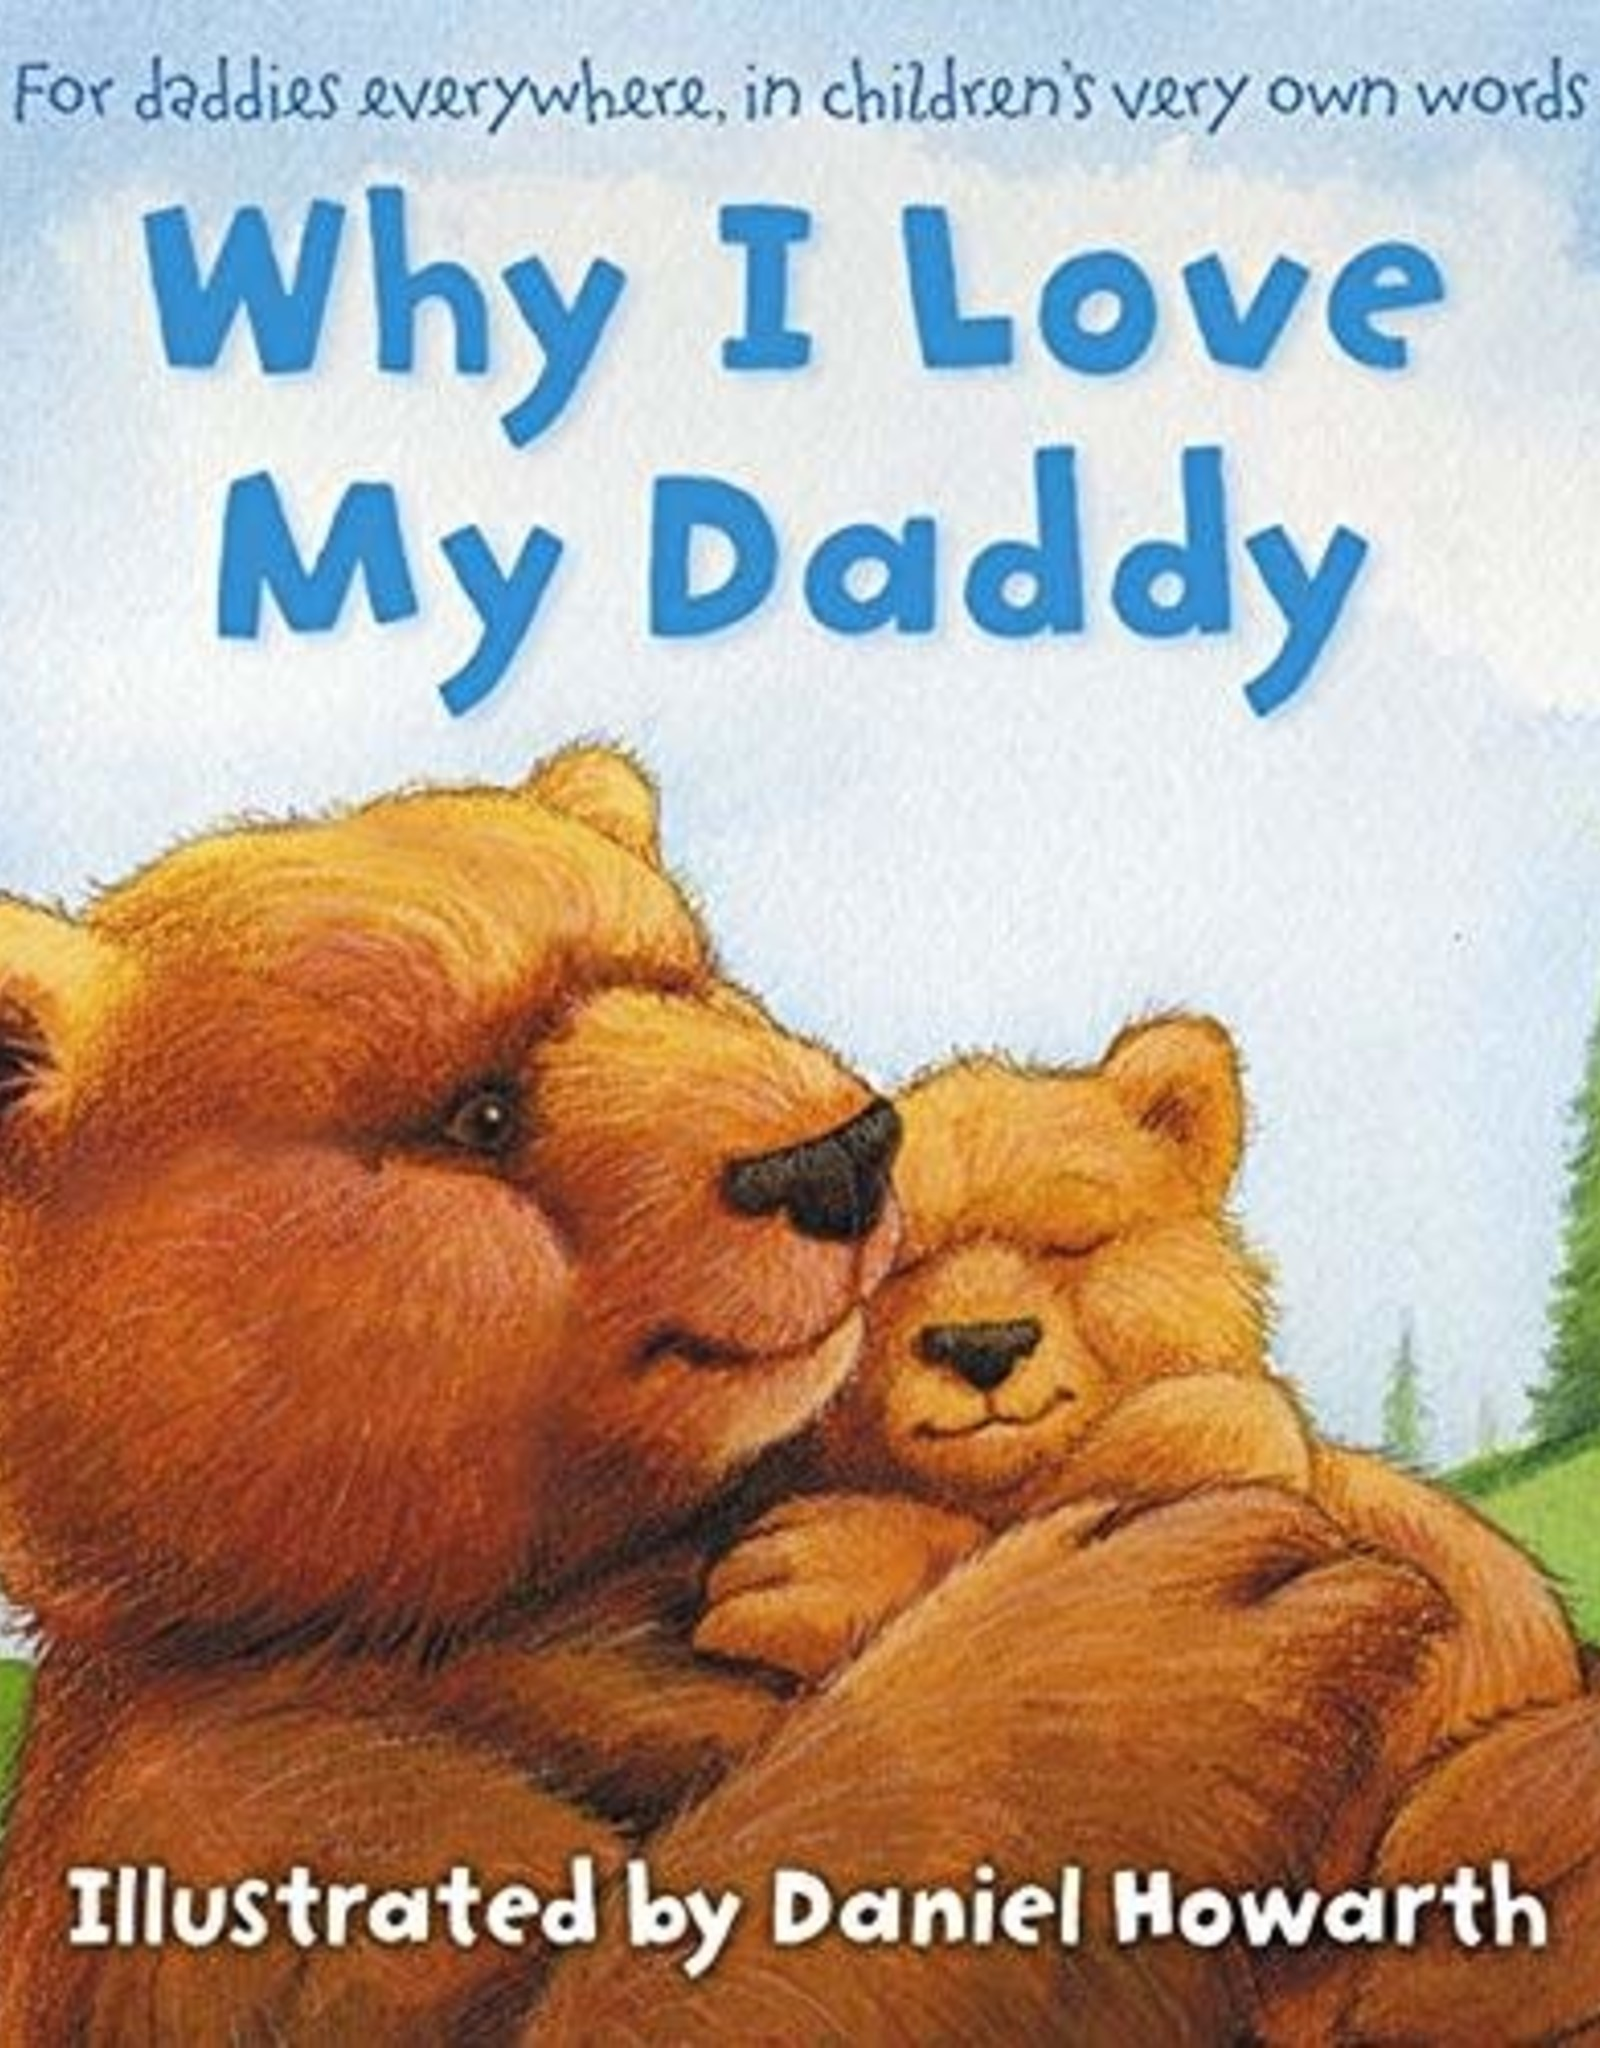 Why I Love My Daddy - Hardcover